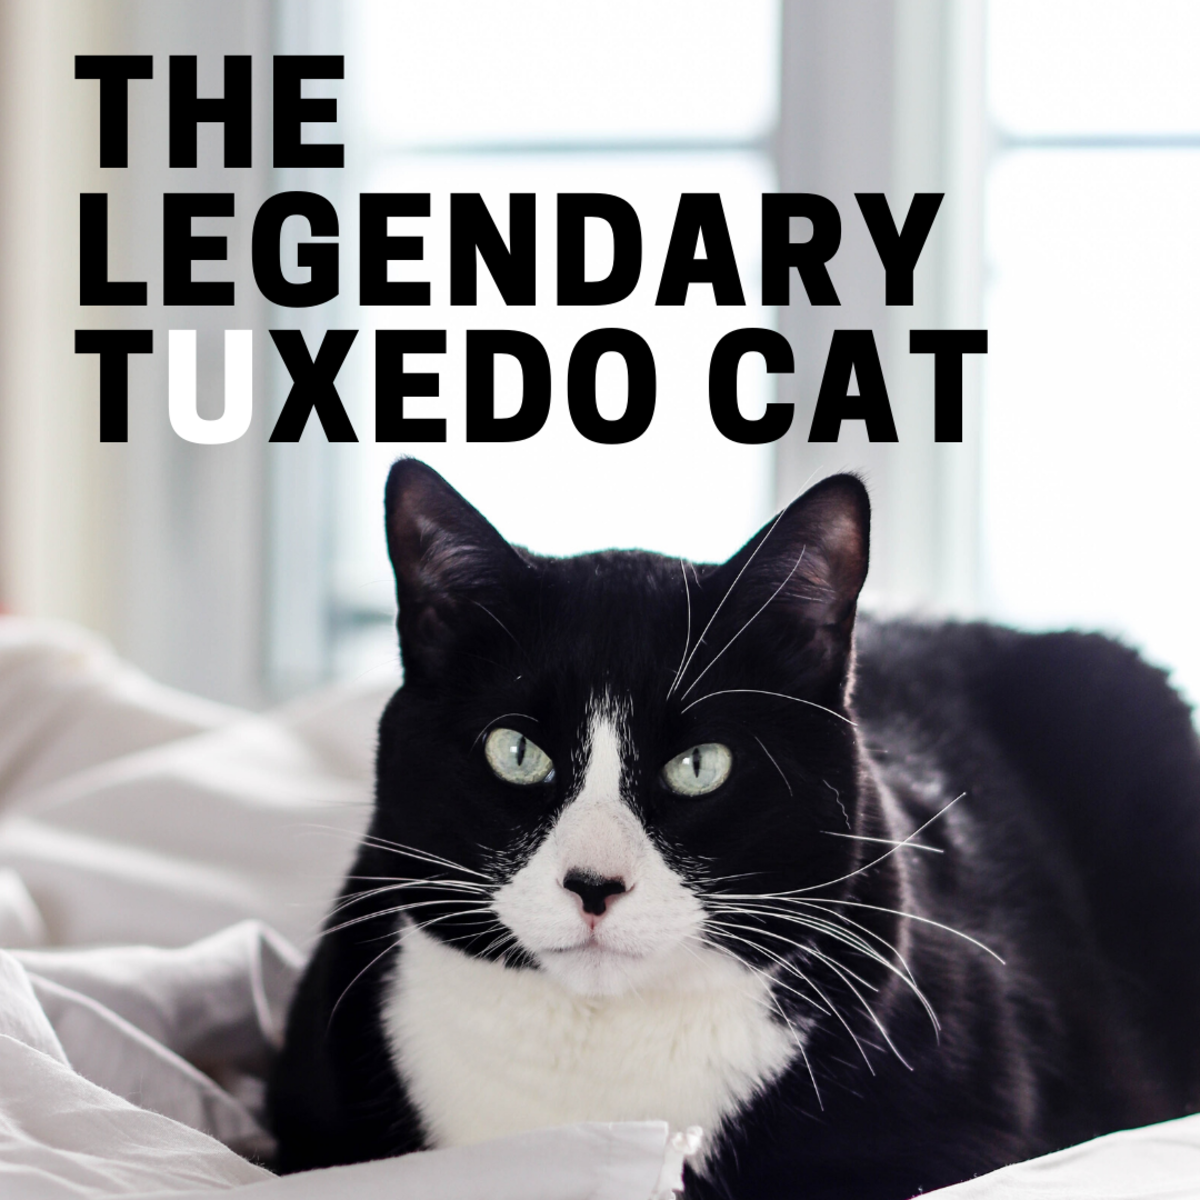 The Legendary Tuxedo Cat